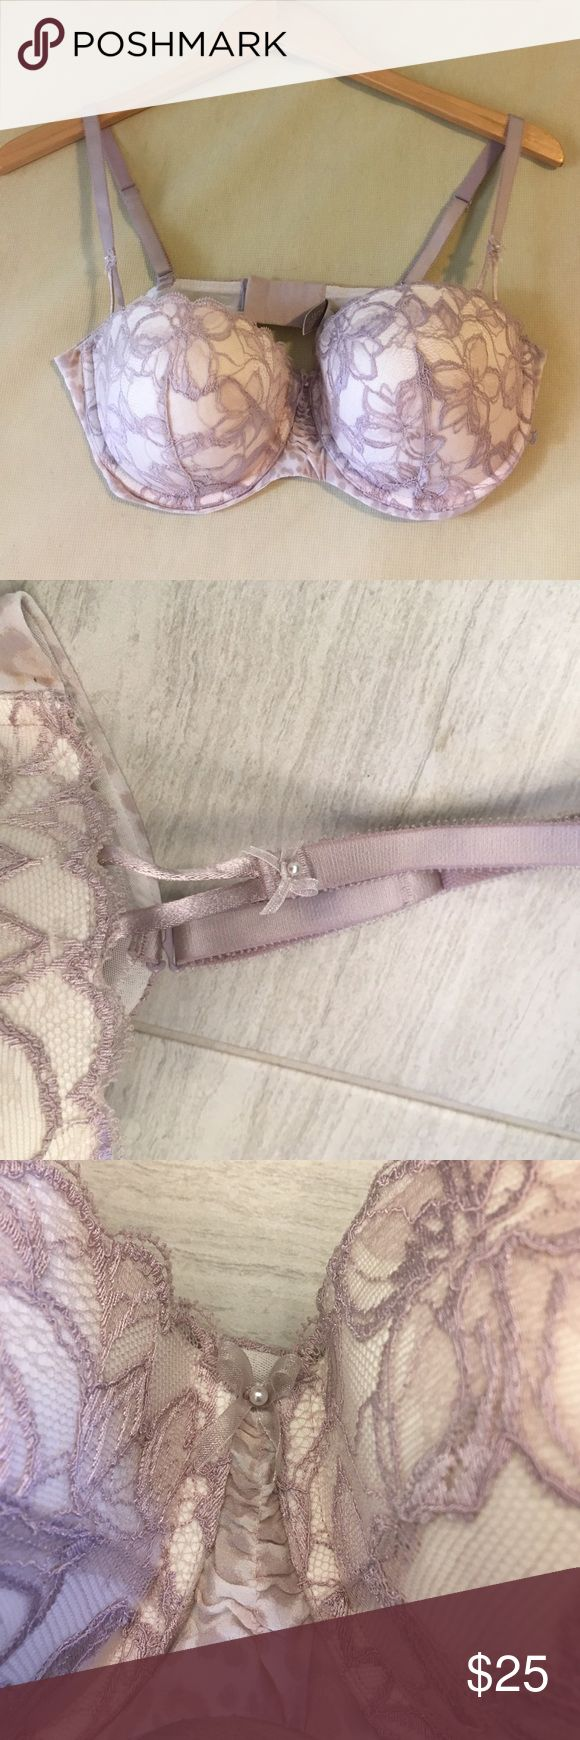 NWOT Victoria's Secret Balconet bra NWOT never worn Size 36 D Victoria's Secret Balconet lightly padded push up bra. Lace design in cups leading to smooth printed fabric on band, lace again just before the clasp. There's also cute pearl detailing at the center of the bra and on the straps. Victoria's Secret Intimates & Sleepwear Bras